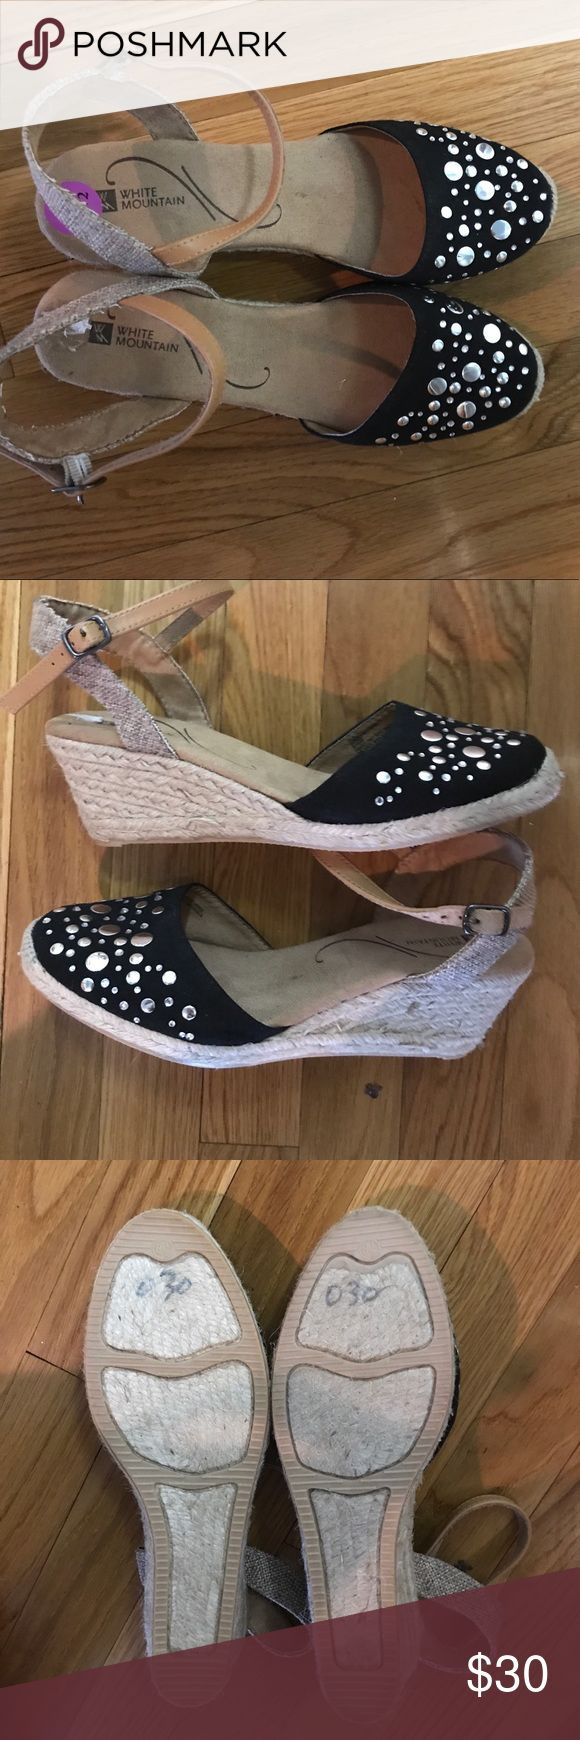 NWOB White Mountain Espadrilles Embellished Wedges White Mountain Espadrilles with Black And Silver Dot Embellished Fronts, leather Straps, Burlap suede heel strap Never worn White Mountain Shoes Espadrilles